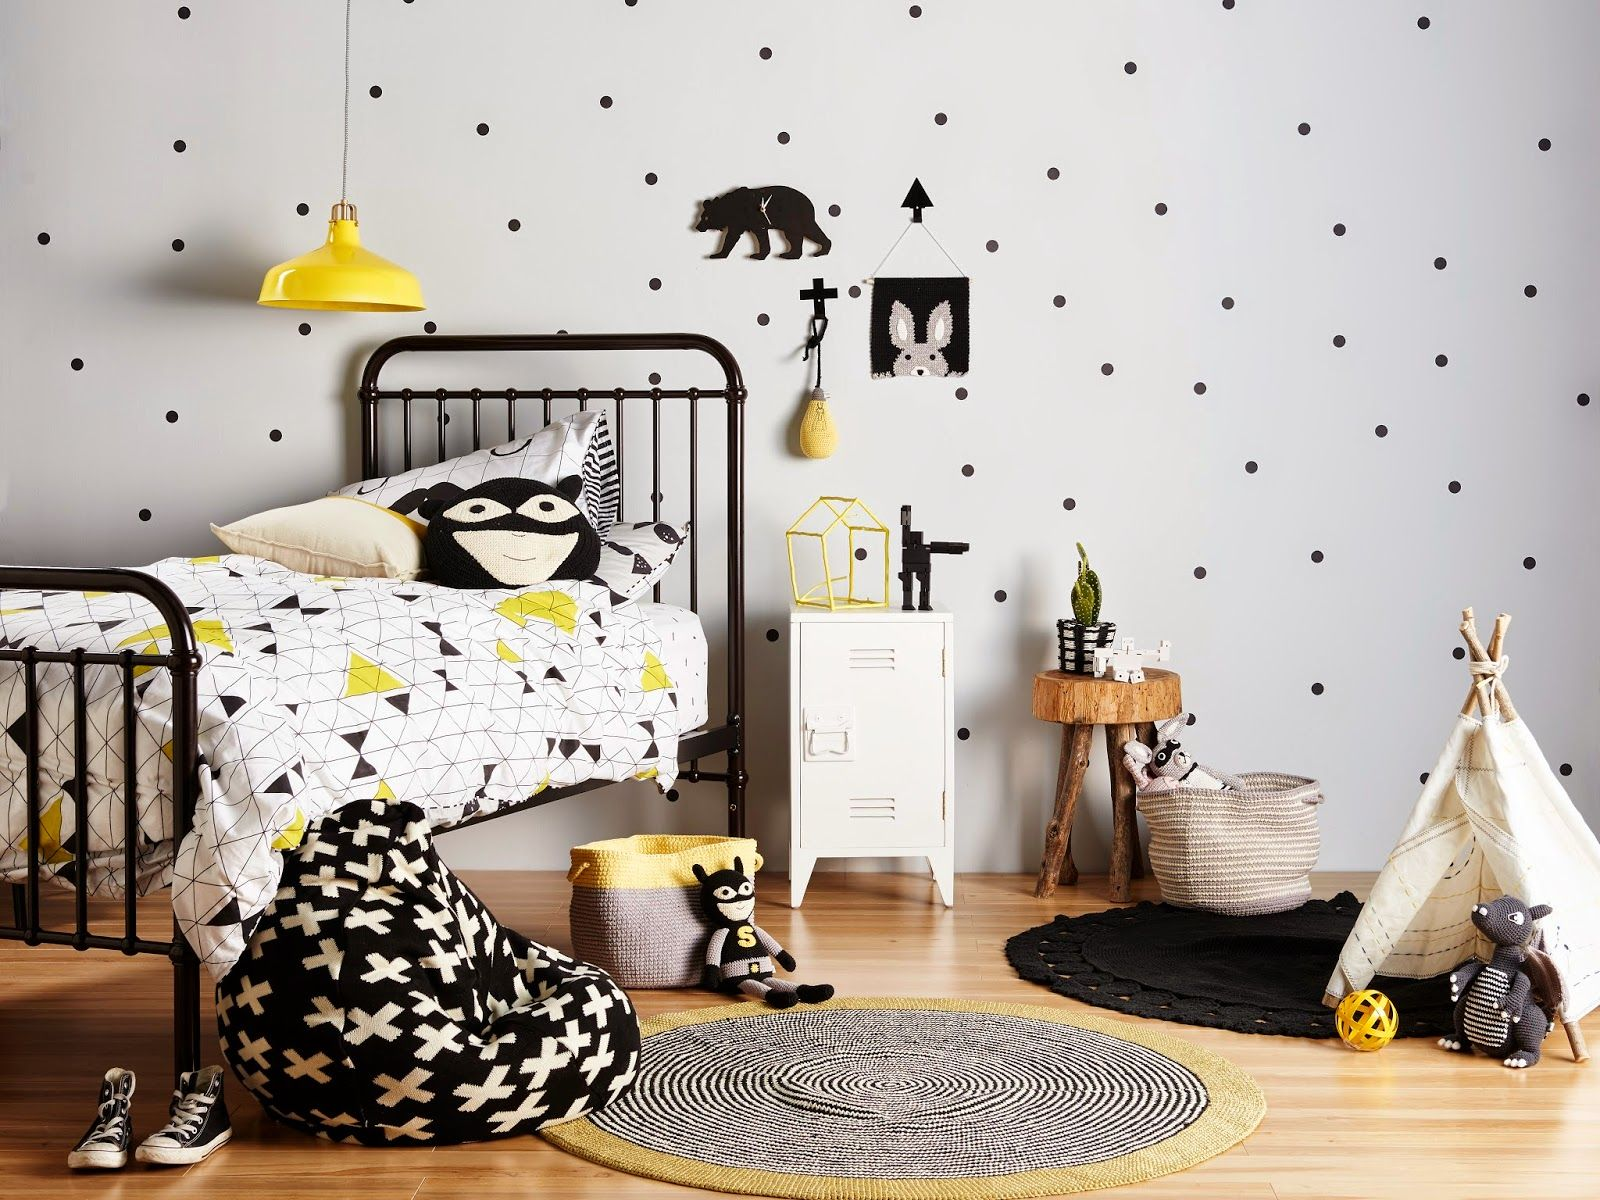 inspirations une chambre d enfant en noir et blanc. Black Bedroom Furniture Sets. Home Design Ideas